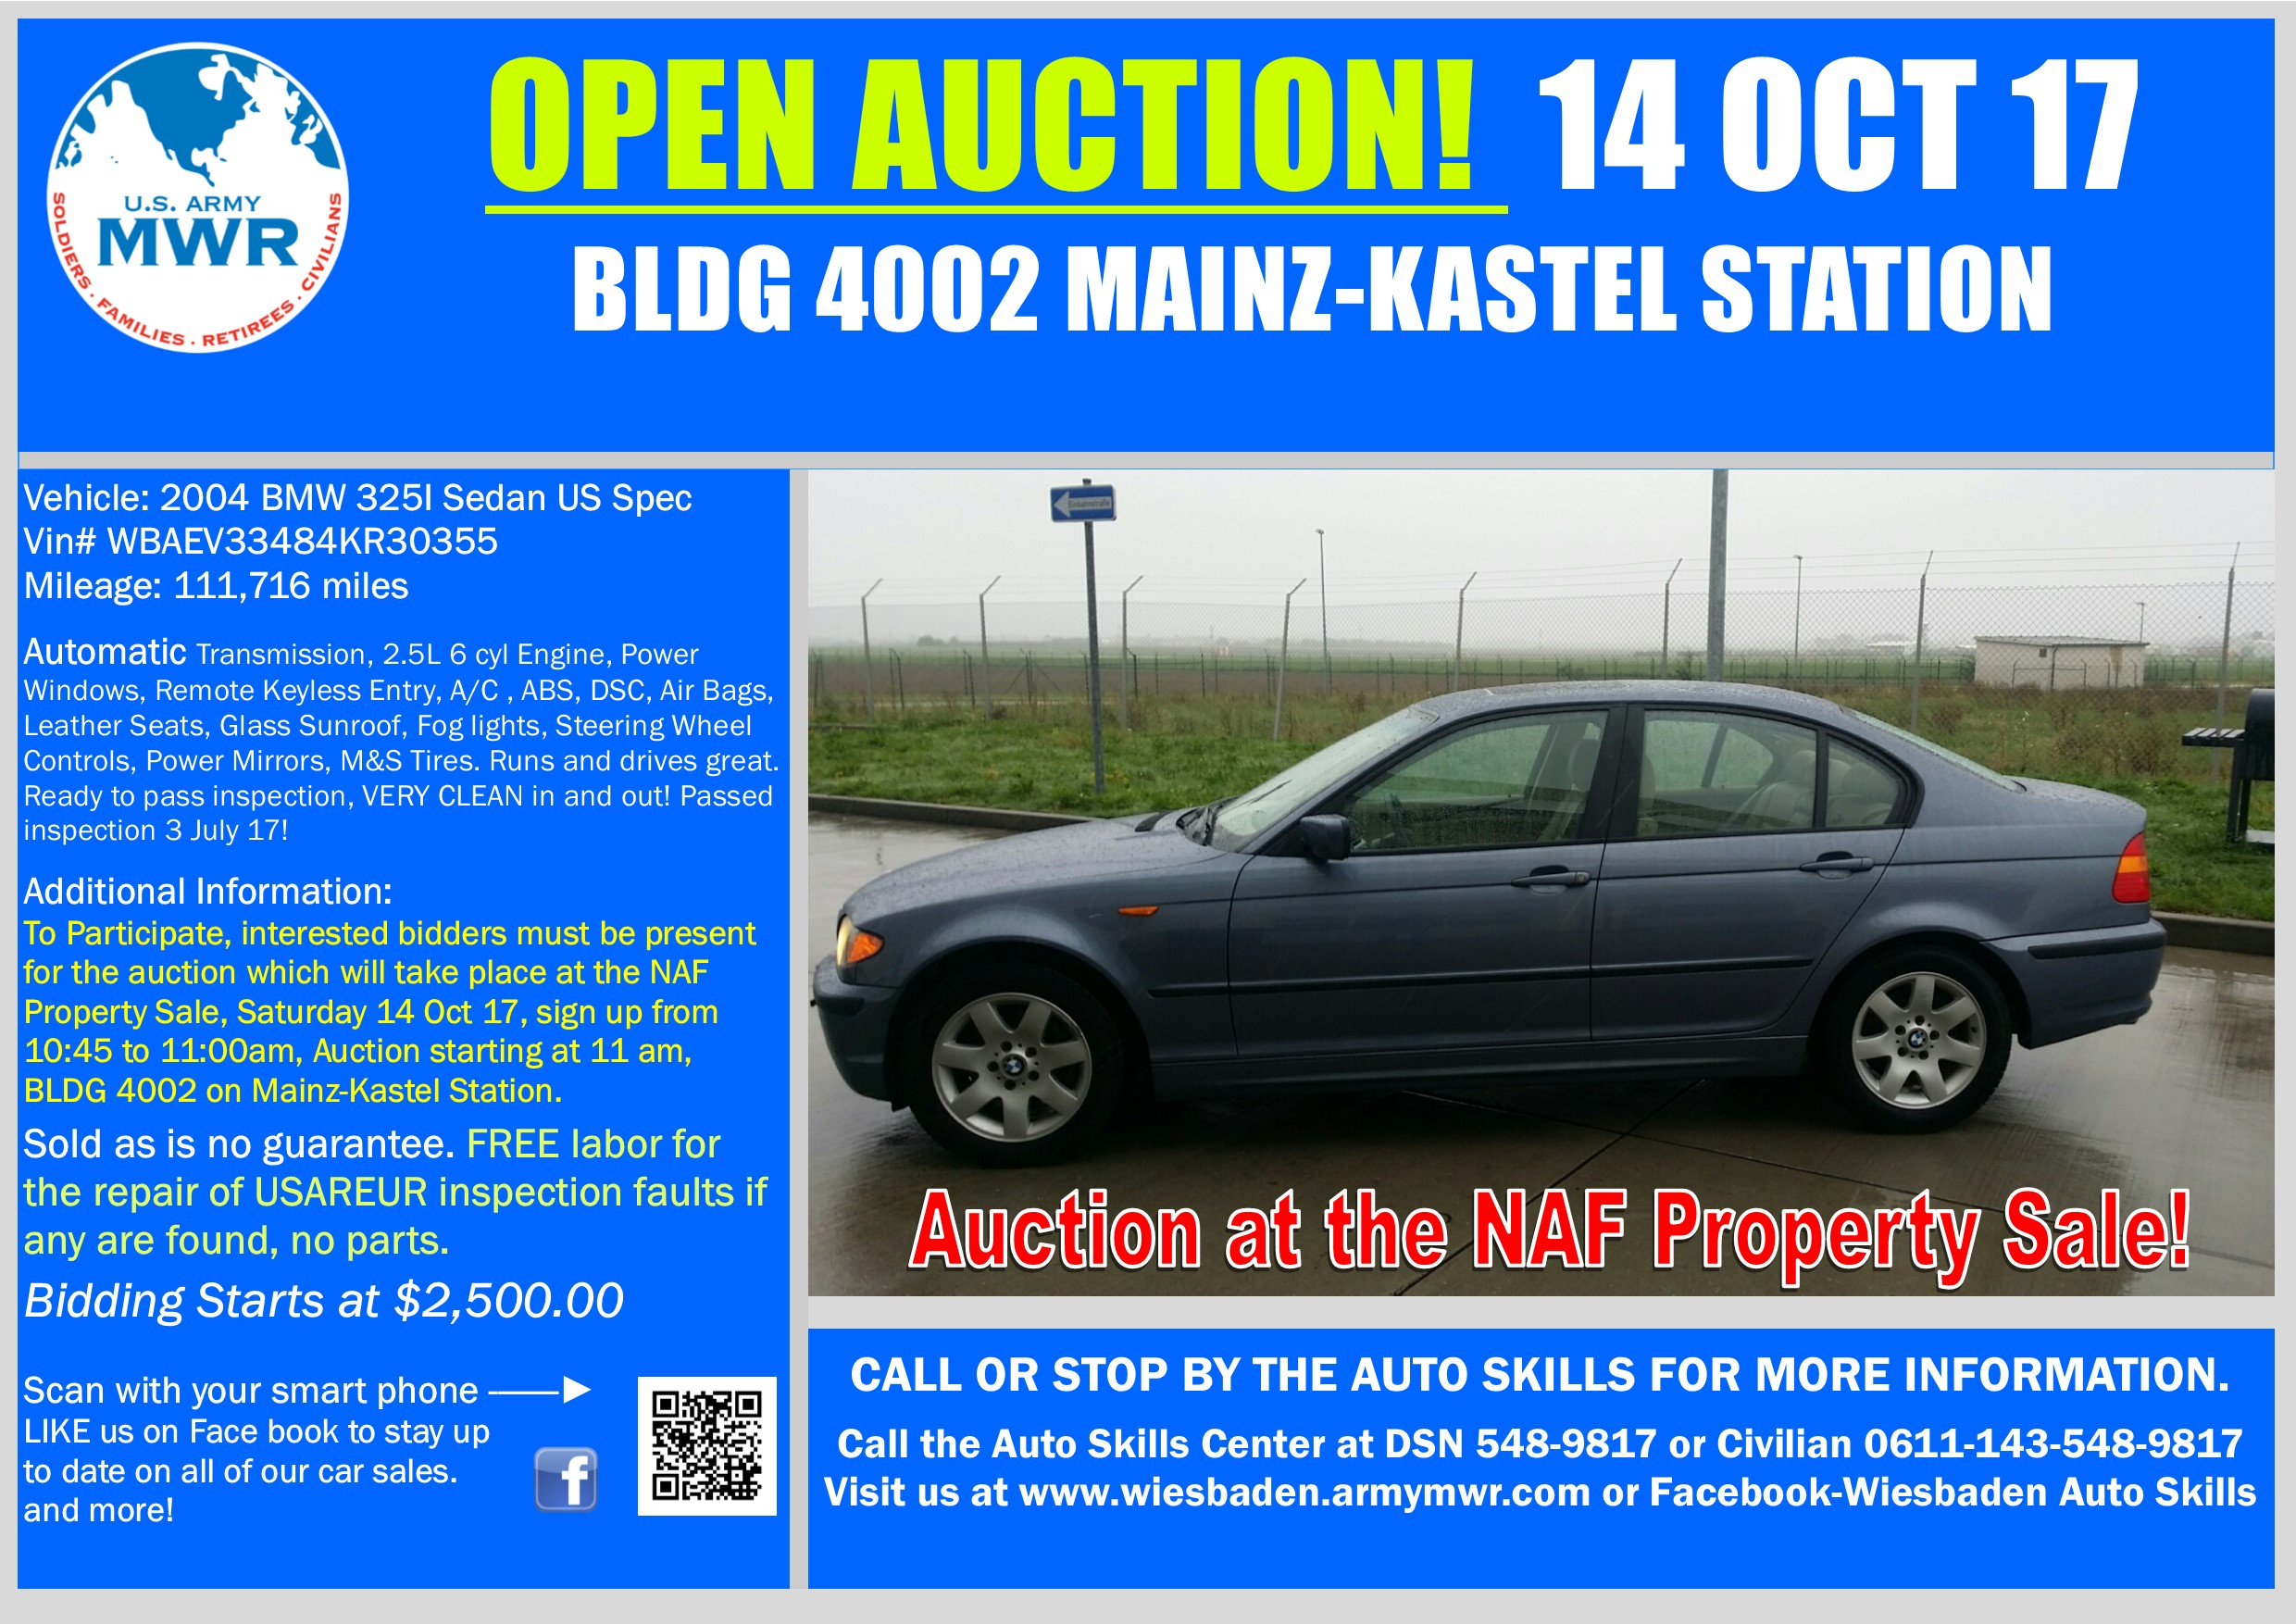 Sale_13 Sep 17 BMW 325I NAF Property Sale (002).jpg